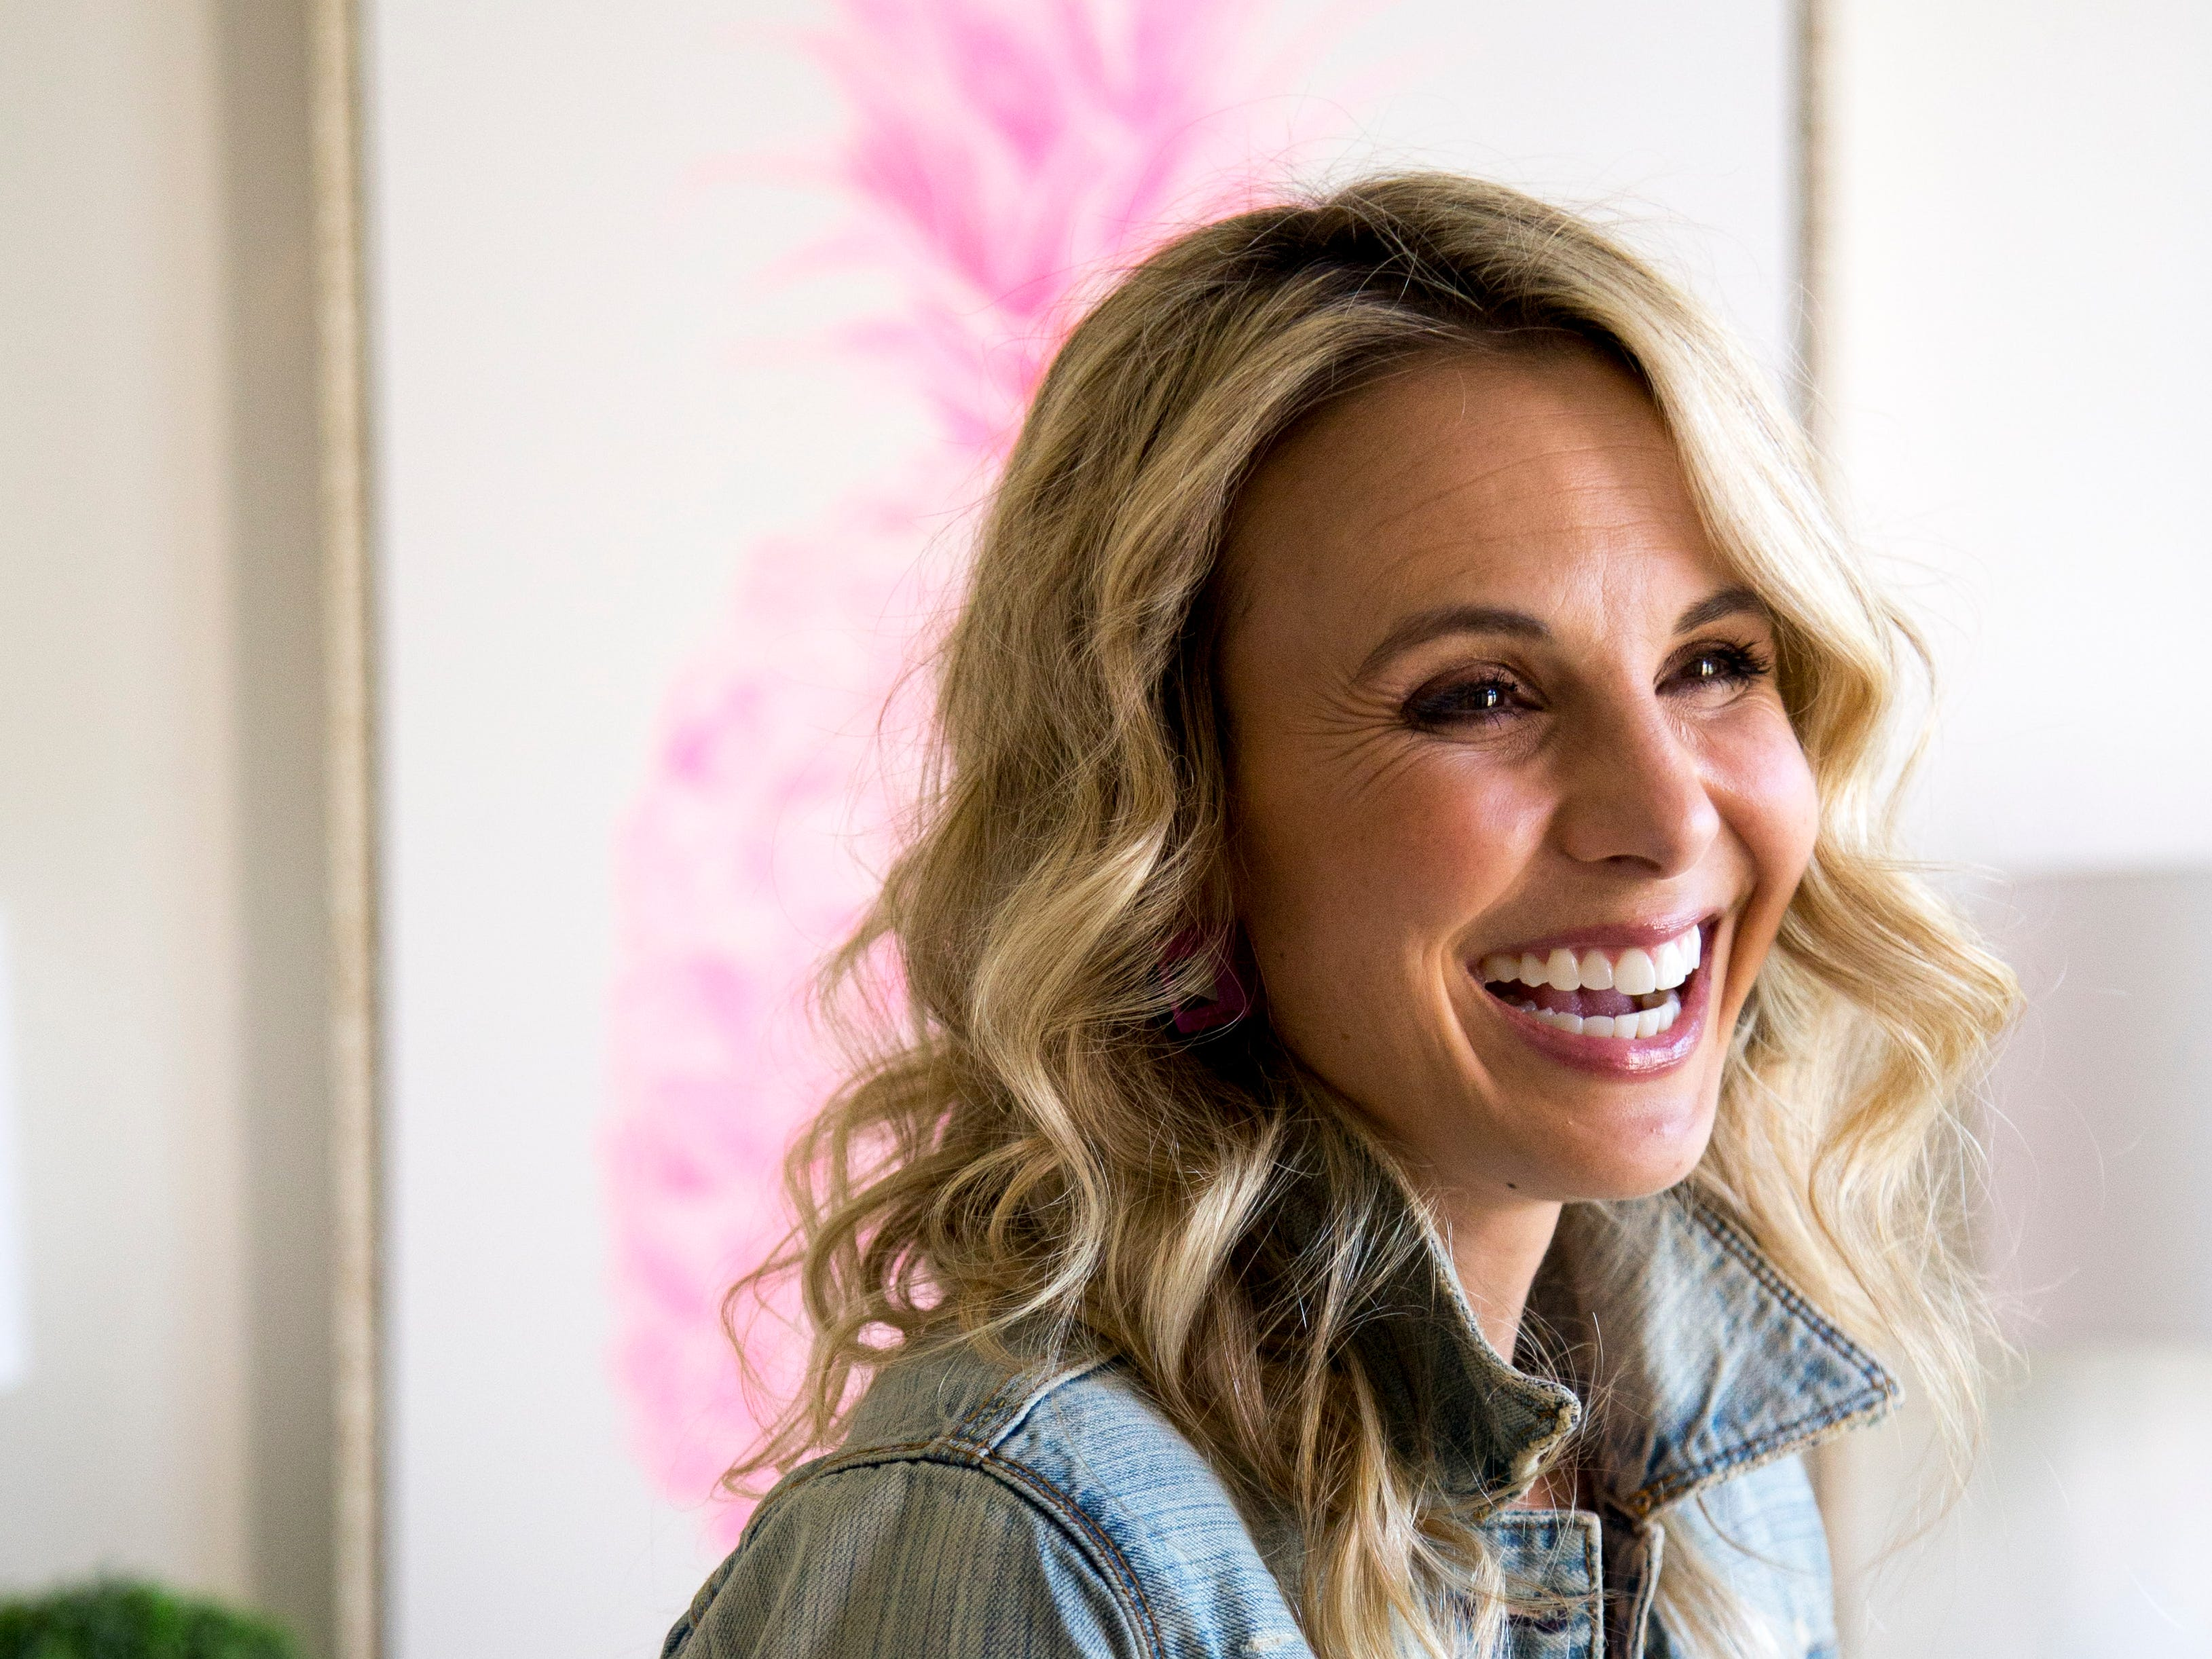 Elisabeth Hasselbeck poses for a picture  at the Hasselbecks' home, in Nashville, Tenn., on Monday, March 4, 2019.